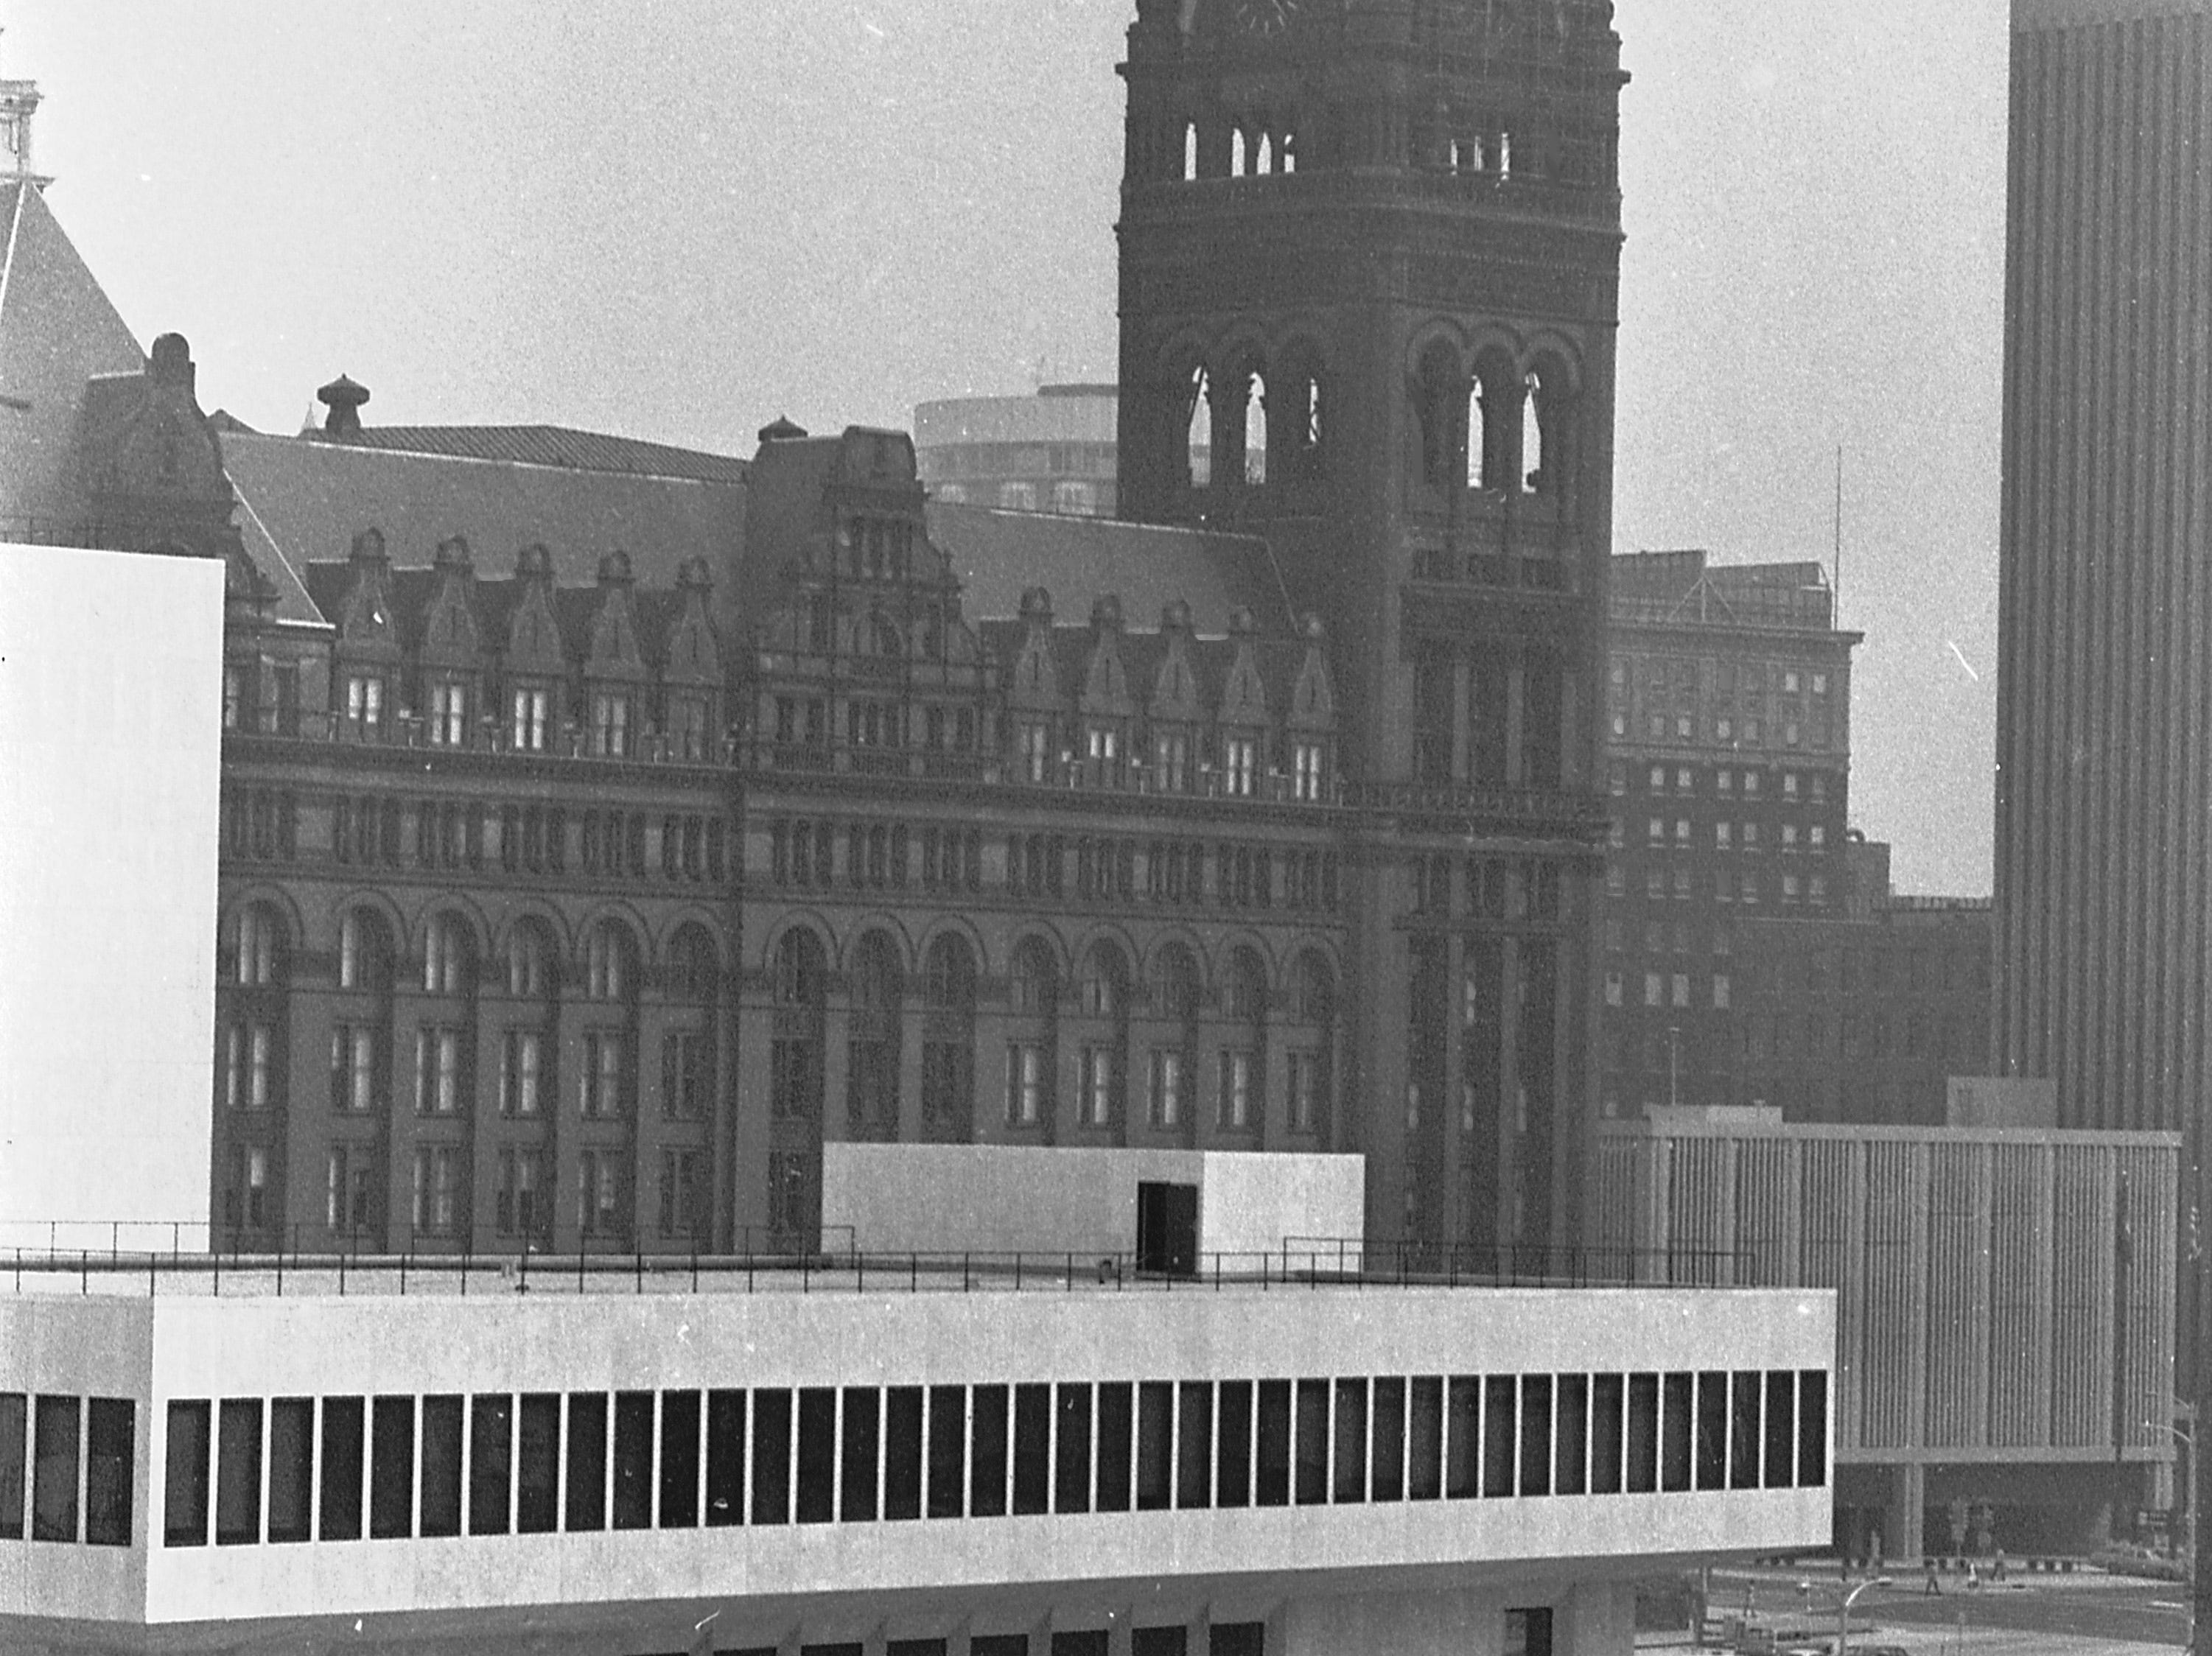 """35mm film negative of the new Milwaukee Performing Arts Center (now known as the Marcus Center for the Performing Arts) or PAC at 929 N. Water St. Construction began on June 27, 1966. This photo was in the Sept. 16 edition of the Sentinel with the caption """"The city hall sets off this riverfront view of the Performing Arts Center. This side has entrances to the Todd Wehr Theater and Bradley pavilion. Background also includes the new Marshall & Ilsley band (right center) and the Pfister hotel (top center). Drive from Kilbourn av. to State st. is in foreground.""""  Date is 9/16/1969. Neg. #69591 exterior, building, music, performance, stage, theater, Uihlein Hall, Todd Wehr hall, Peck Pavilion."""